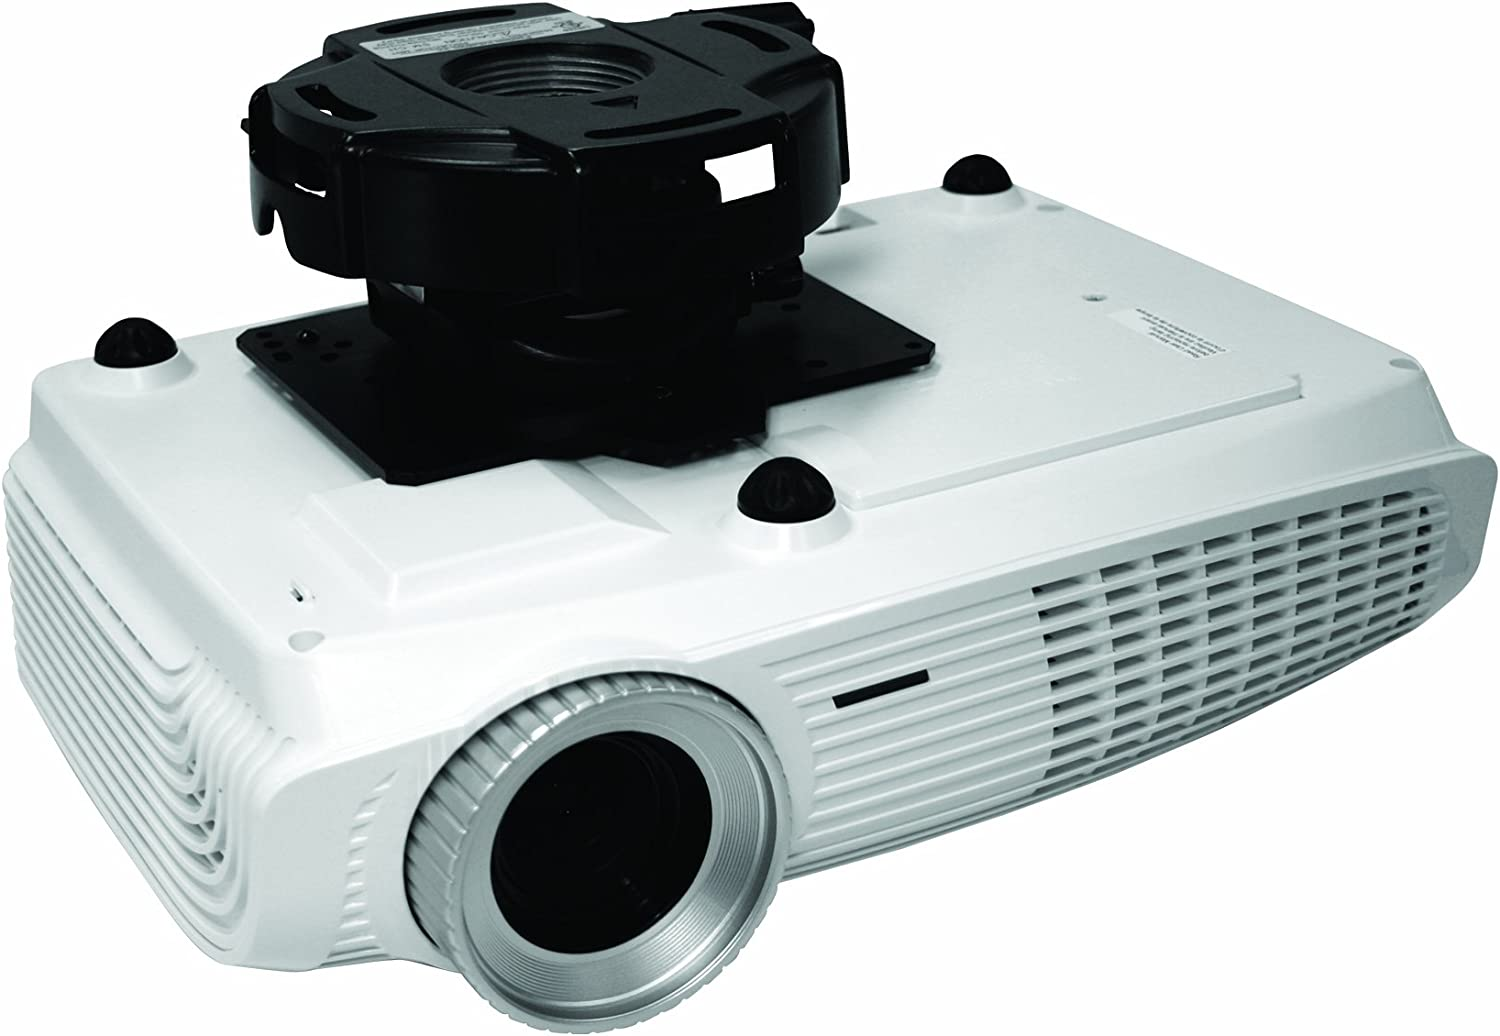 Optoma BM-5001U Techo Negro Montaje para Projector: Amazon.es ...